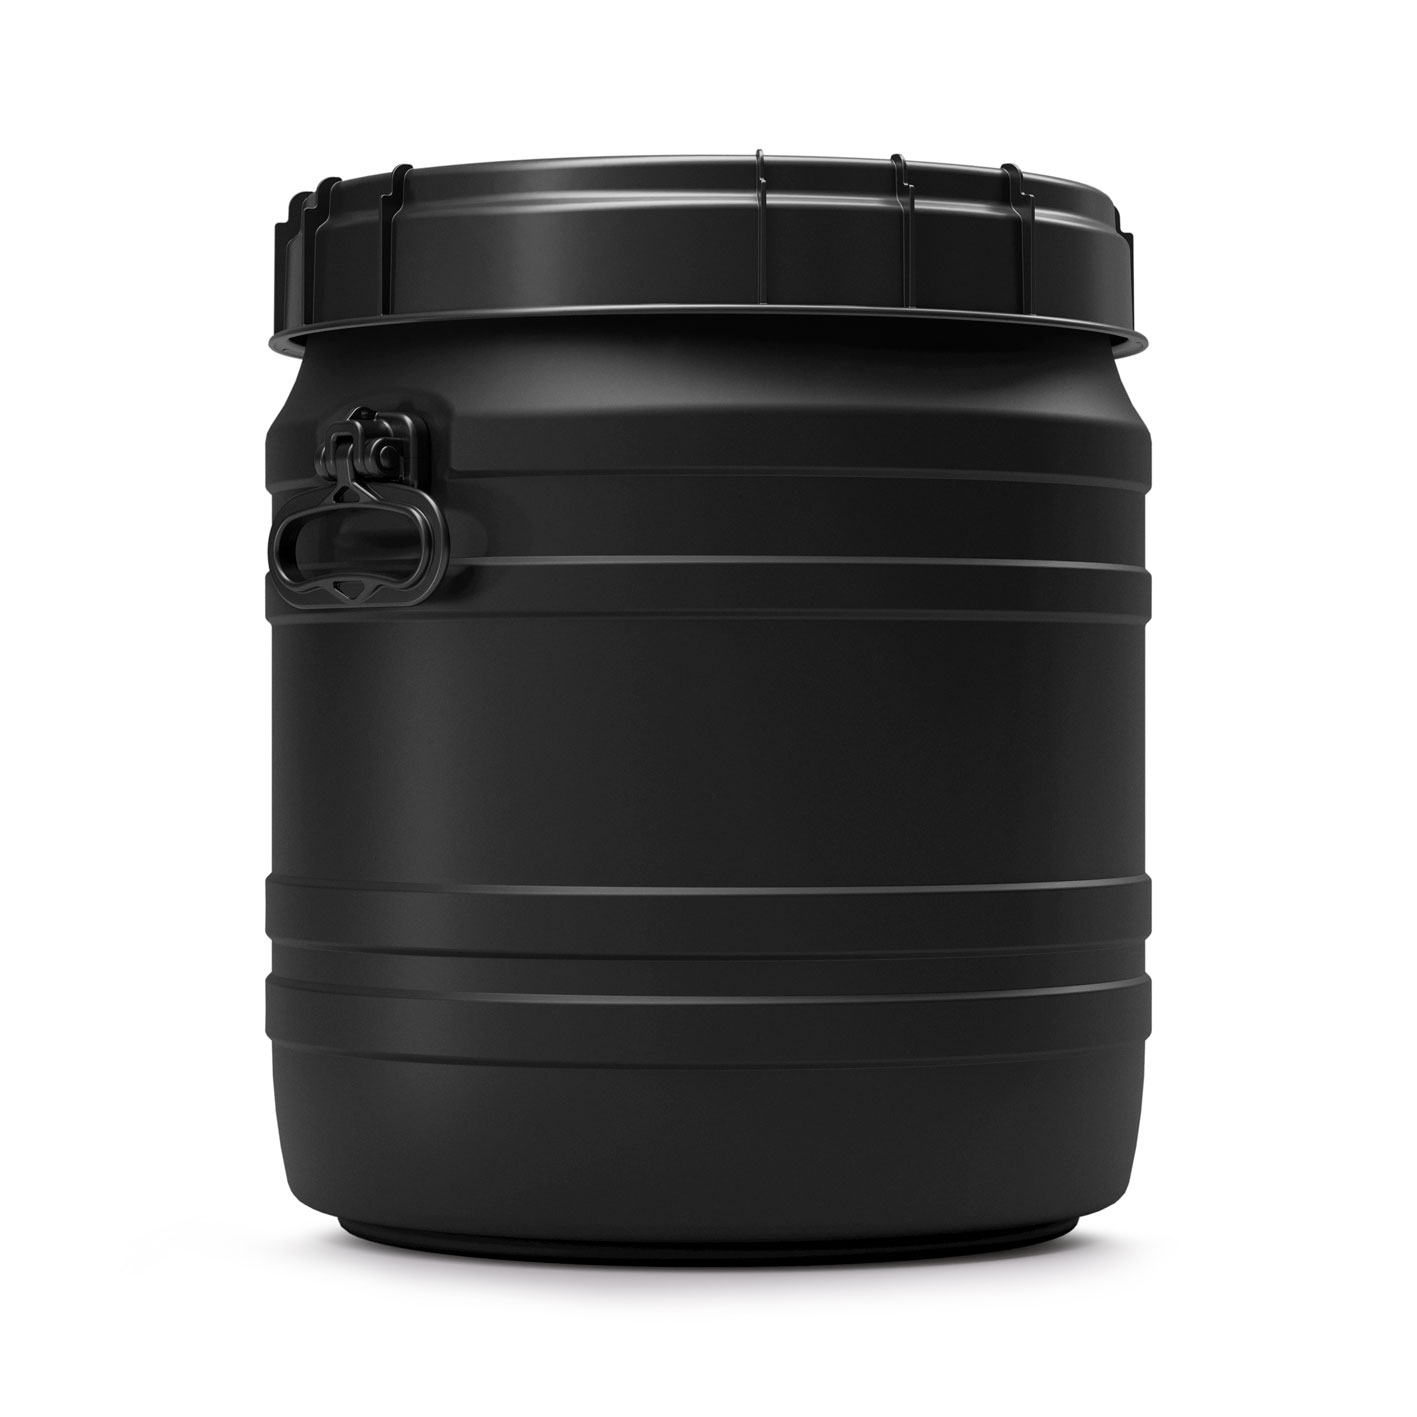 55 liter UV safe drum